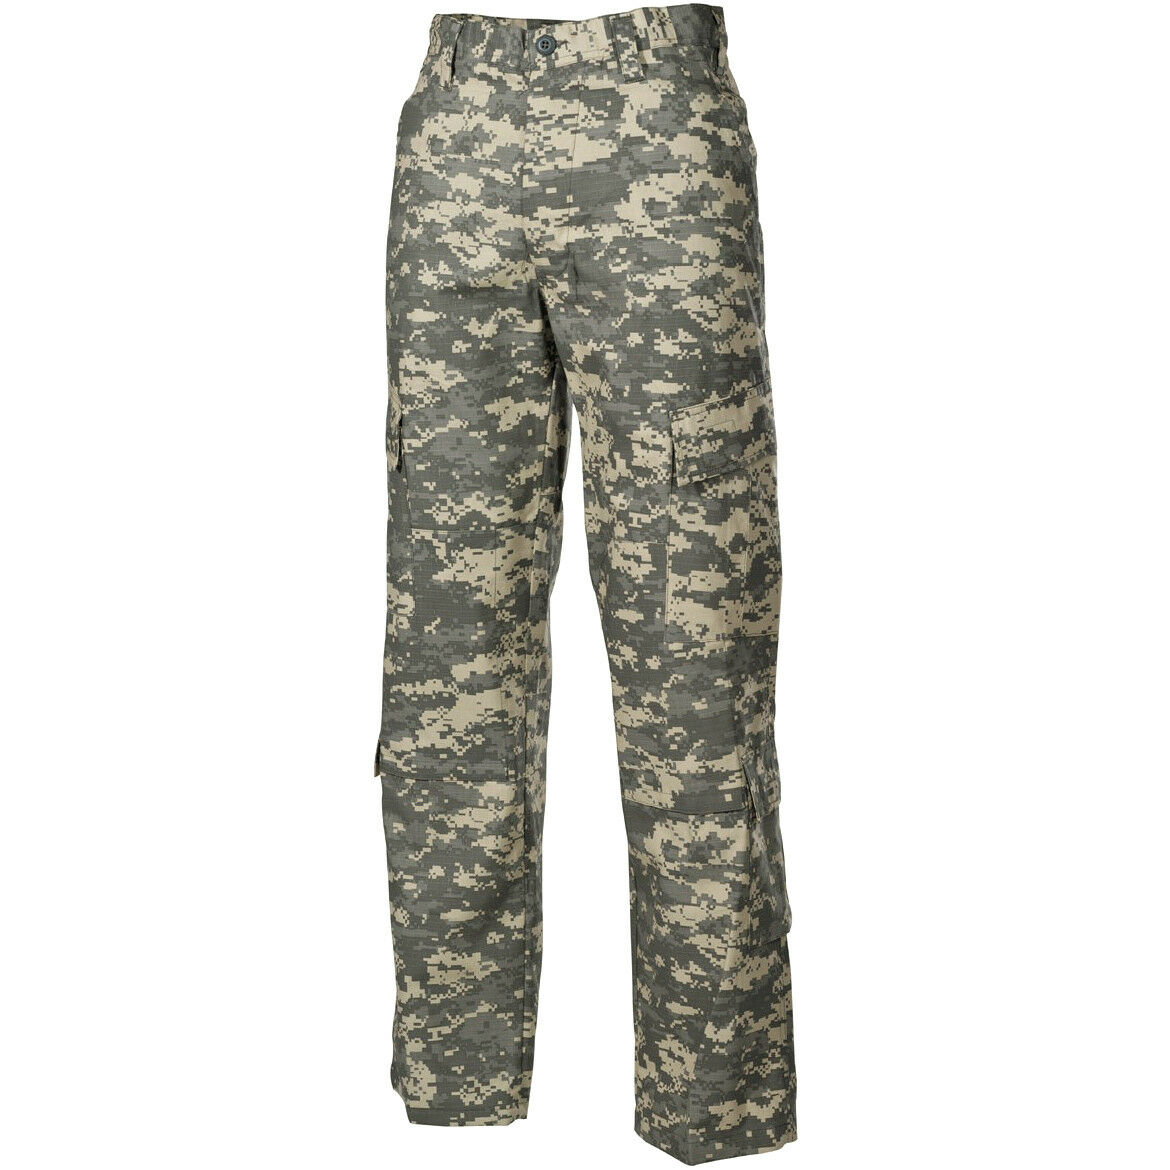 MFH ACU Trousers Tactical Cargos Combat Military Ripstop Mens Pants AT Digital